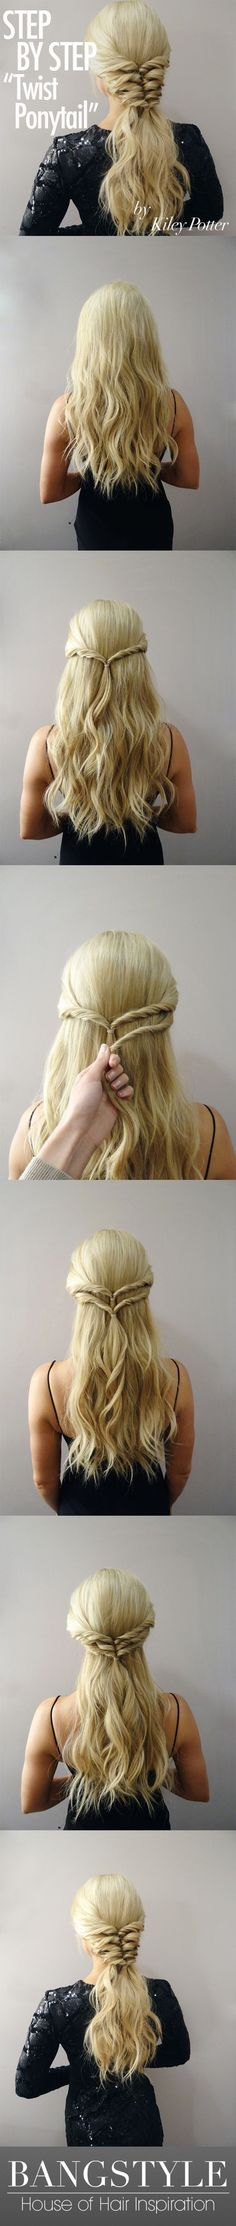 cool 20 Simple and Easy Hairstyle Tutorials For Your Daily Look! - Trend To Wear by http://www.danazhairstyles.xyz/hair-tutorials/20-simple-and-easy-hairstyle-tutorials-for-your-daily-look-trend-to-wear/